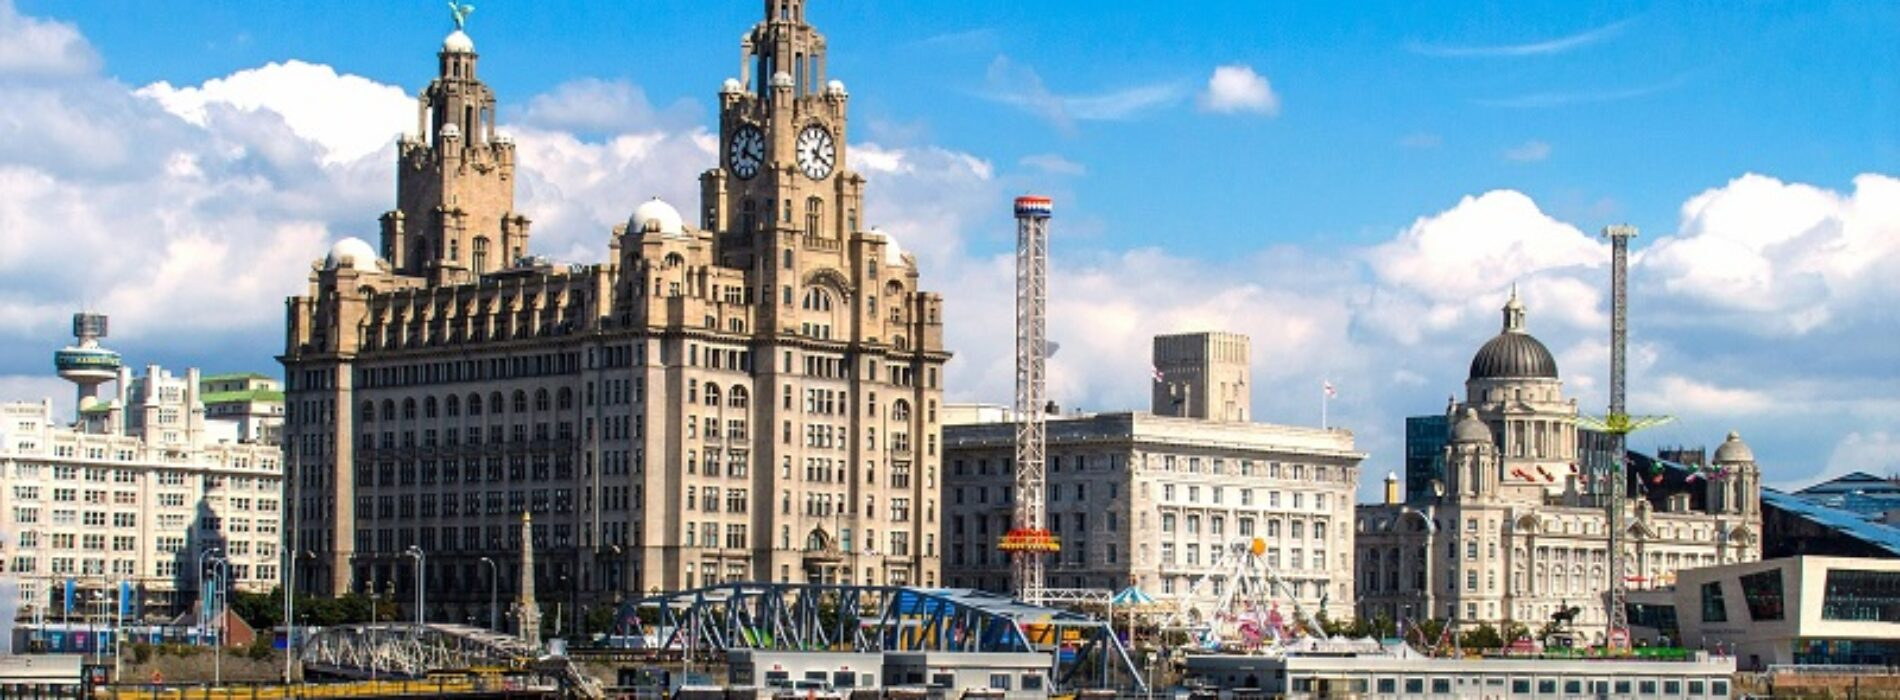 Top 5 accessible attractions and cities to visit in England if you have a disability